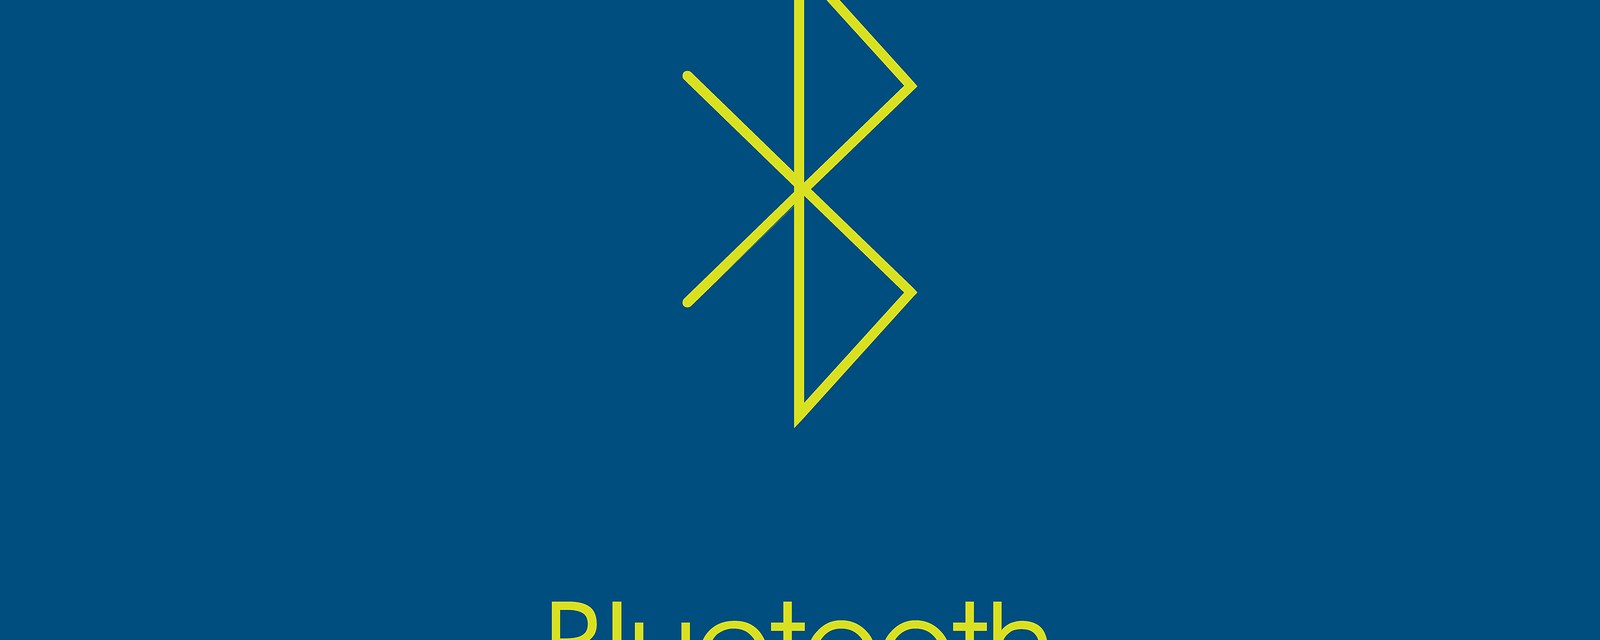 Bluetooth LE Powered Devices are Affected by 12 Vulnerabilities